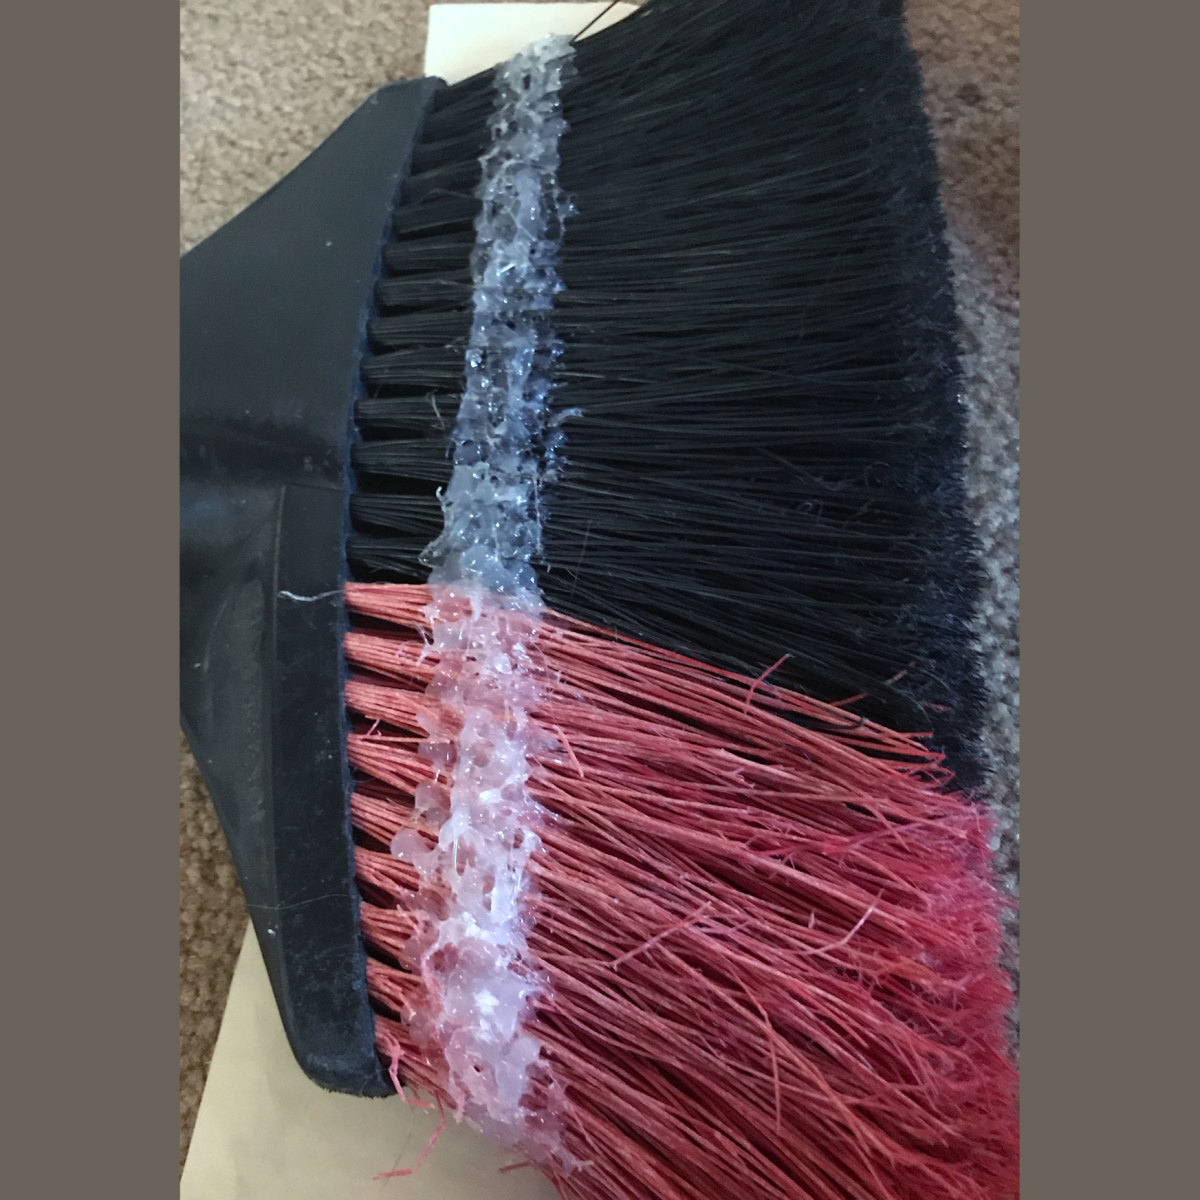 Hot glue penetrates to include all bristles.